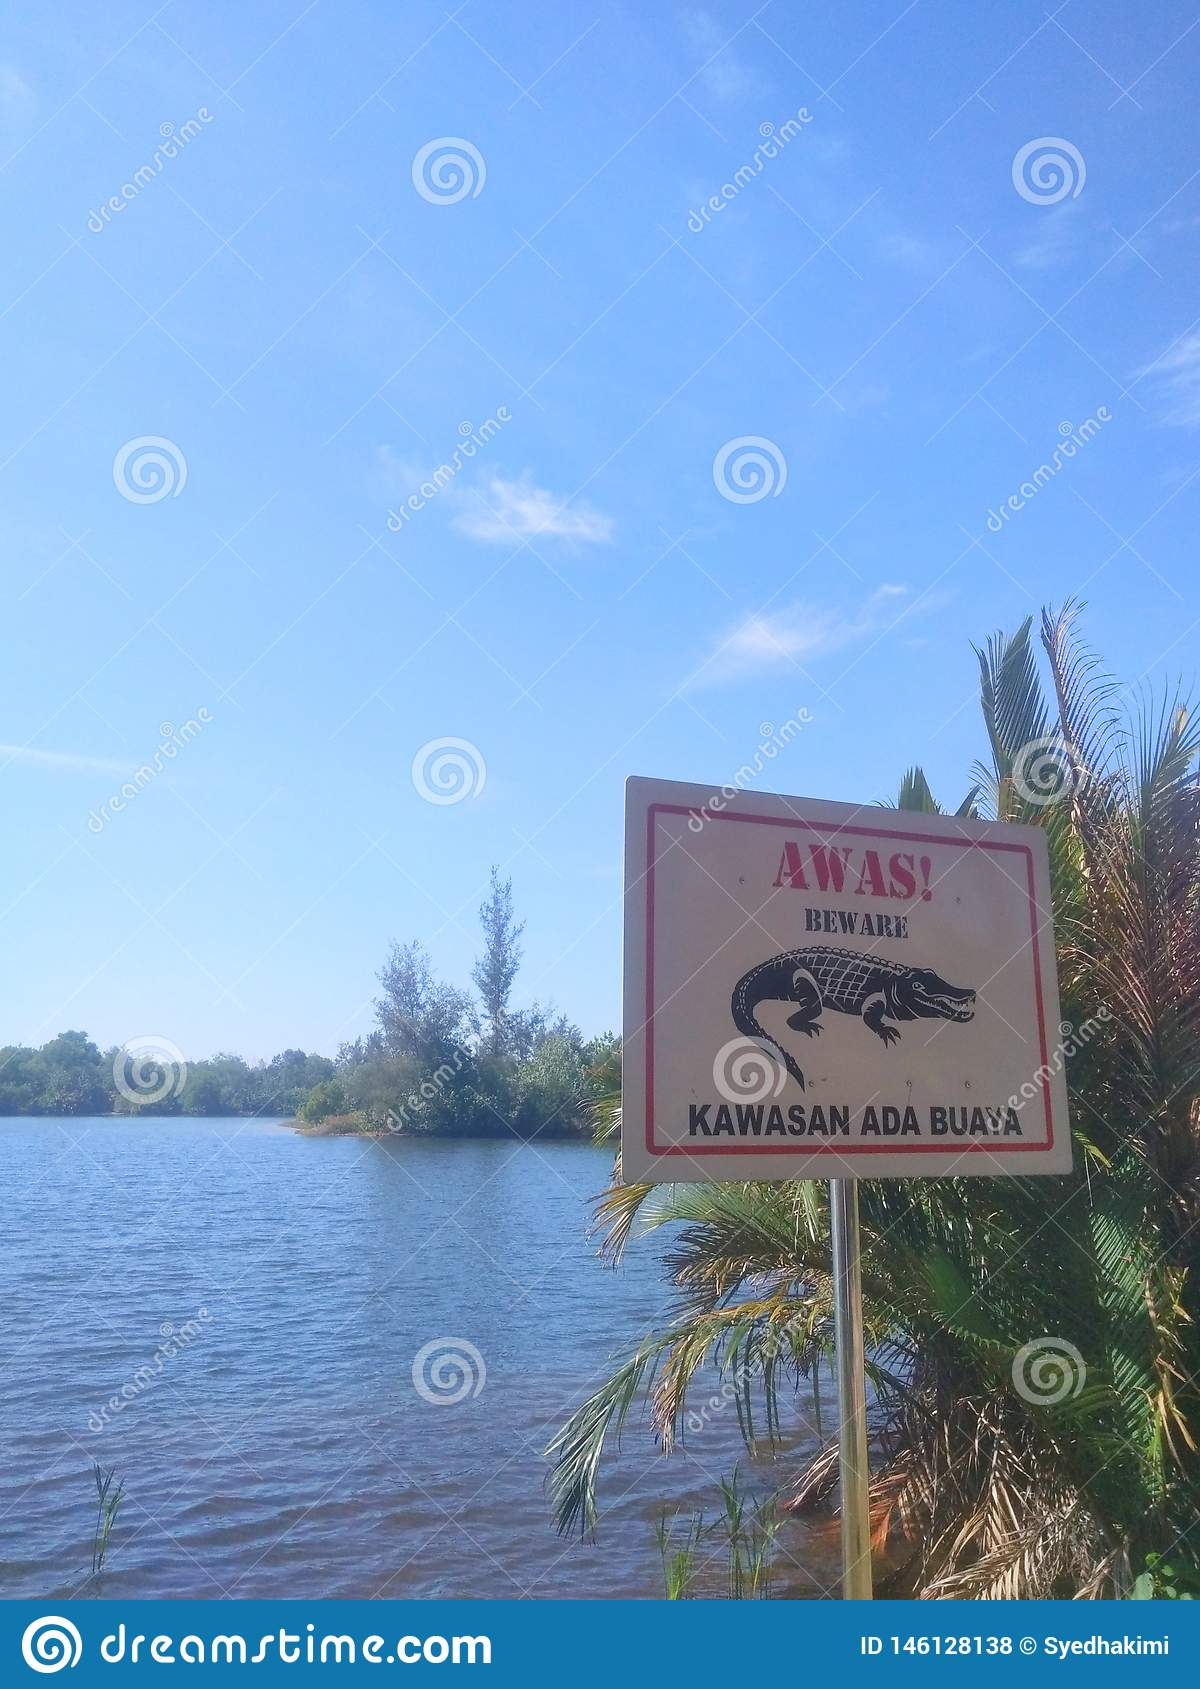 sign board image of a crocodile and a lake